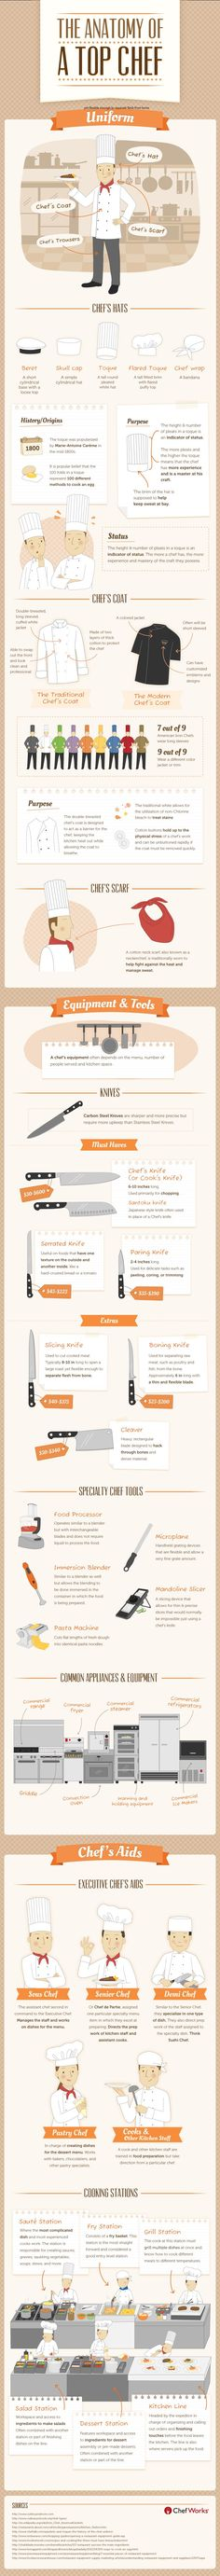 What Chefs Do Use Kind Knives